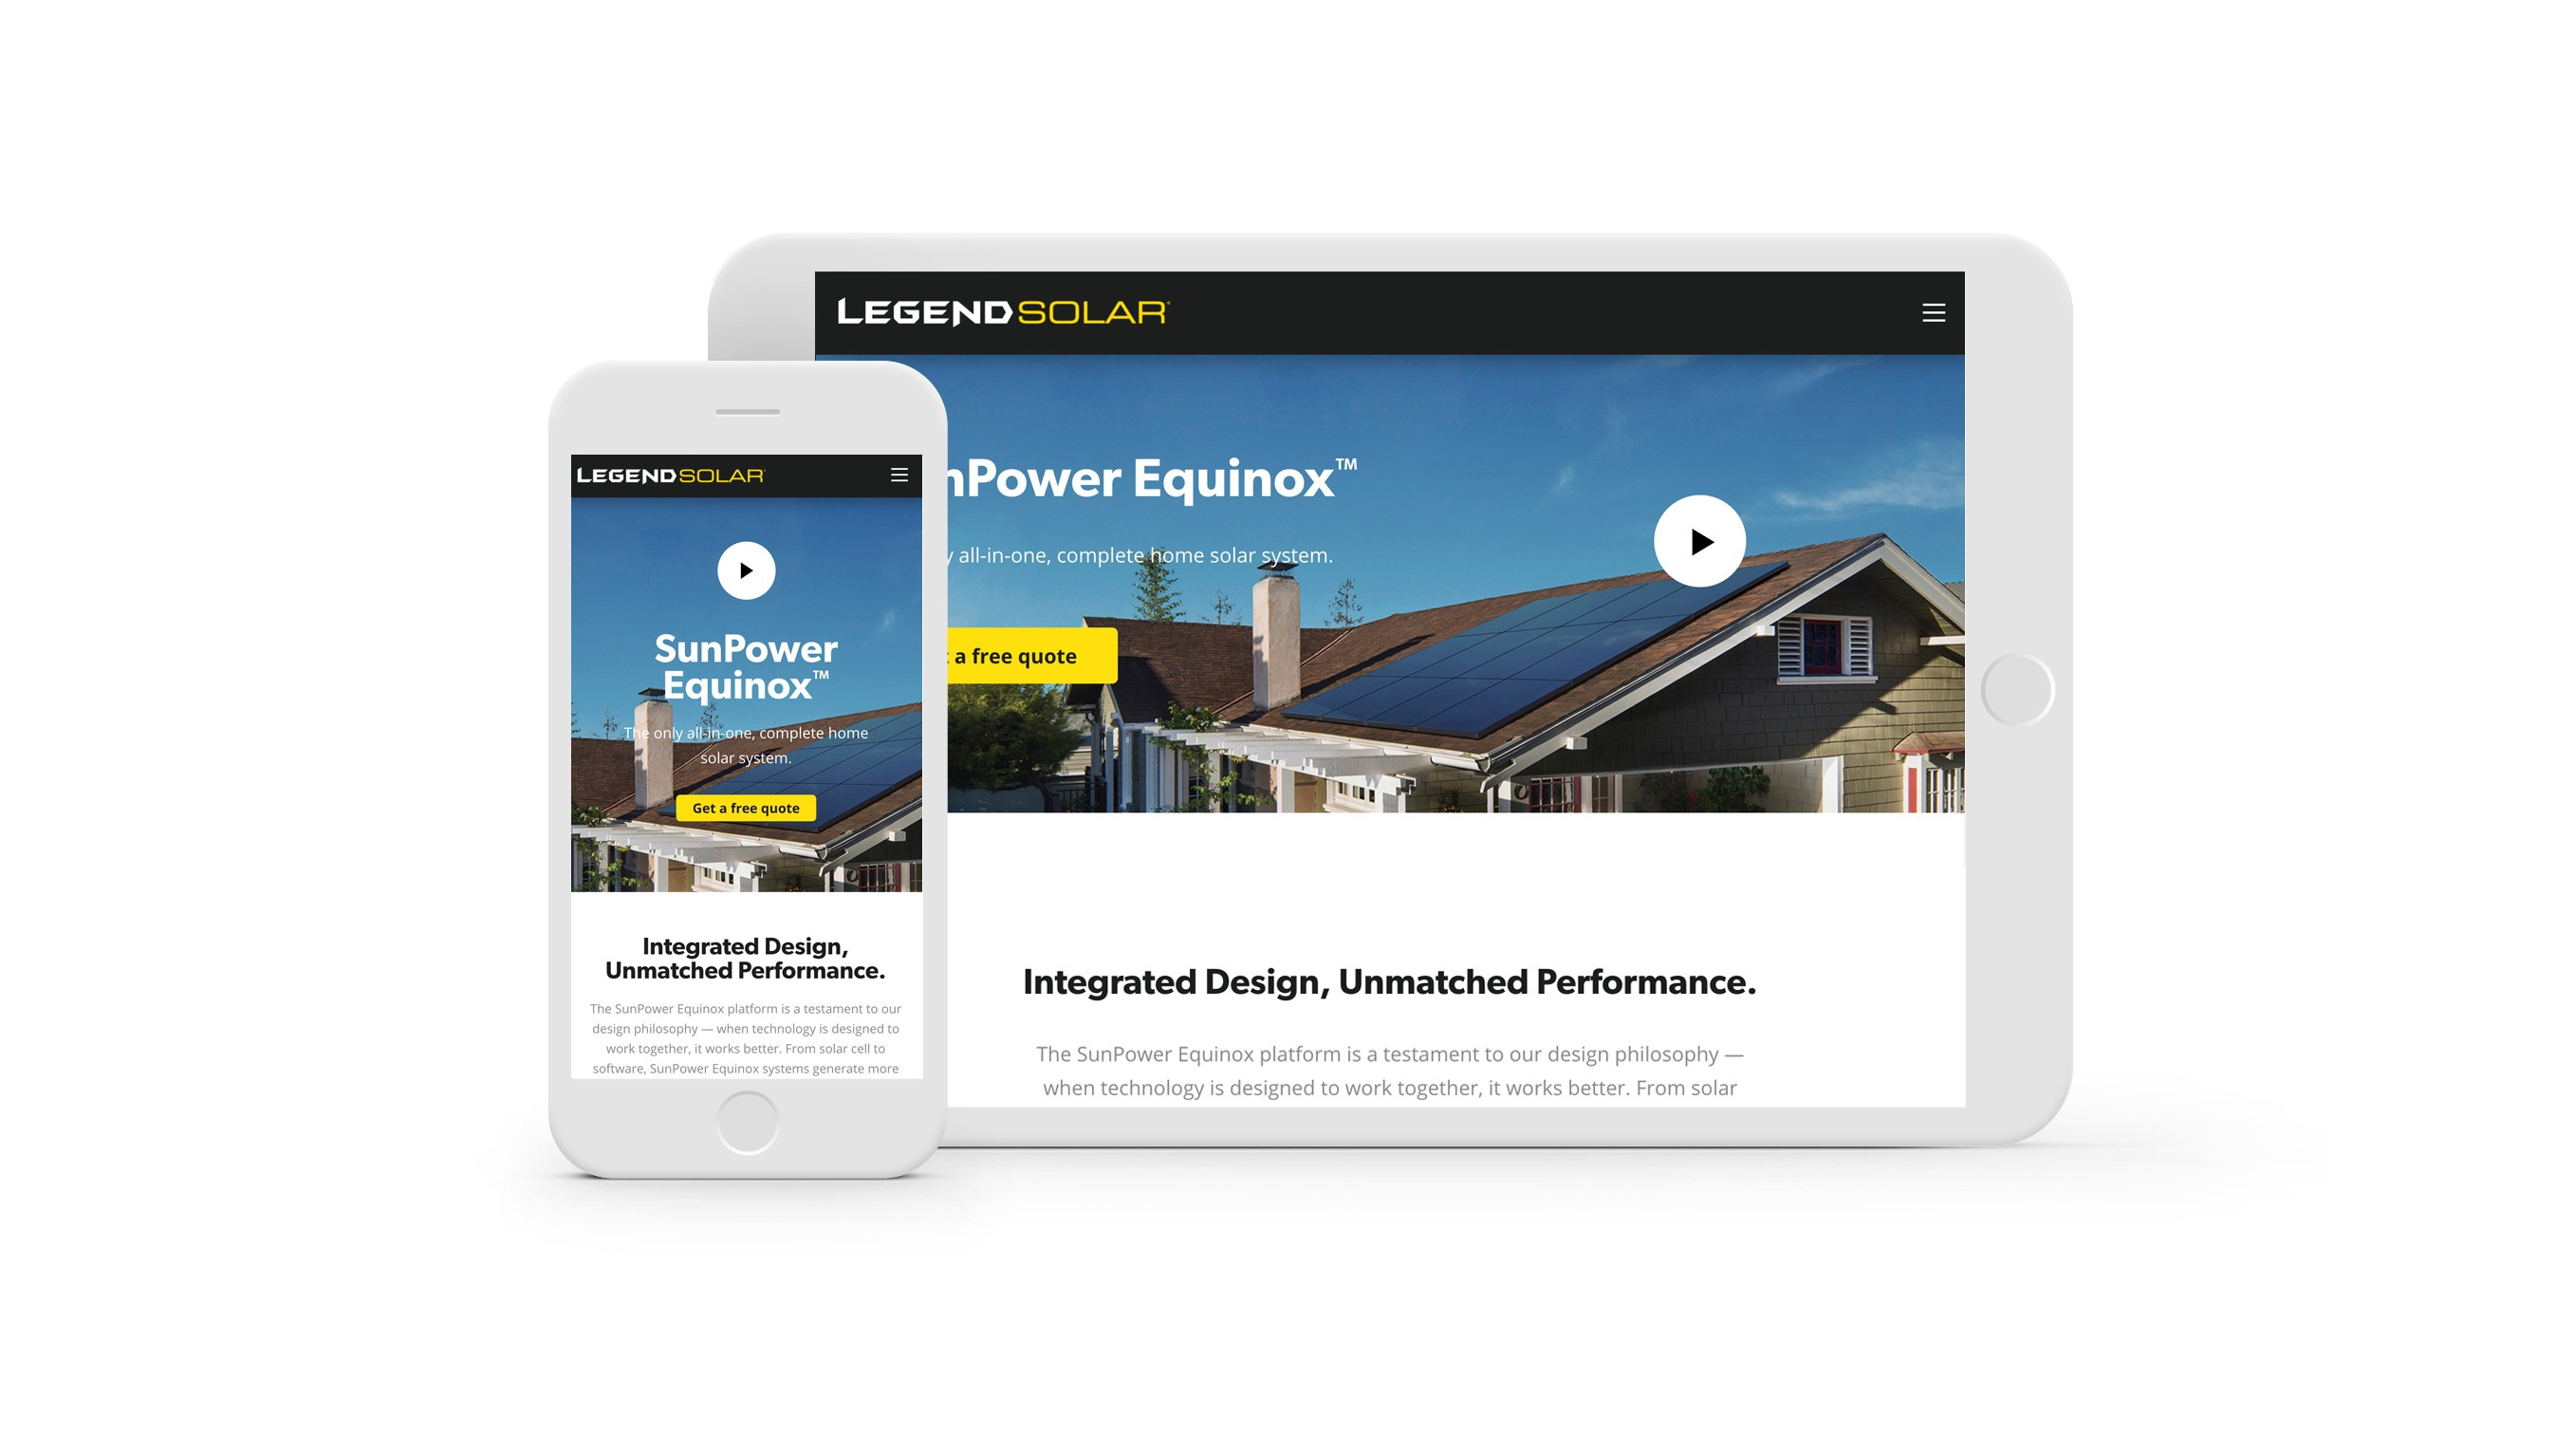 Legend Solar website on phone and tablet screens